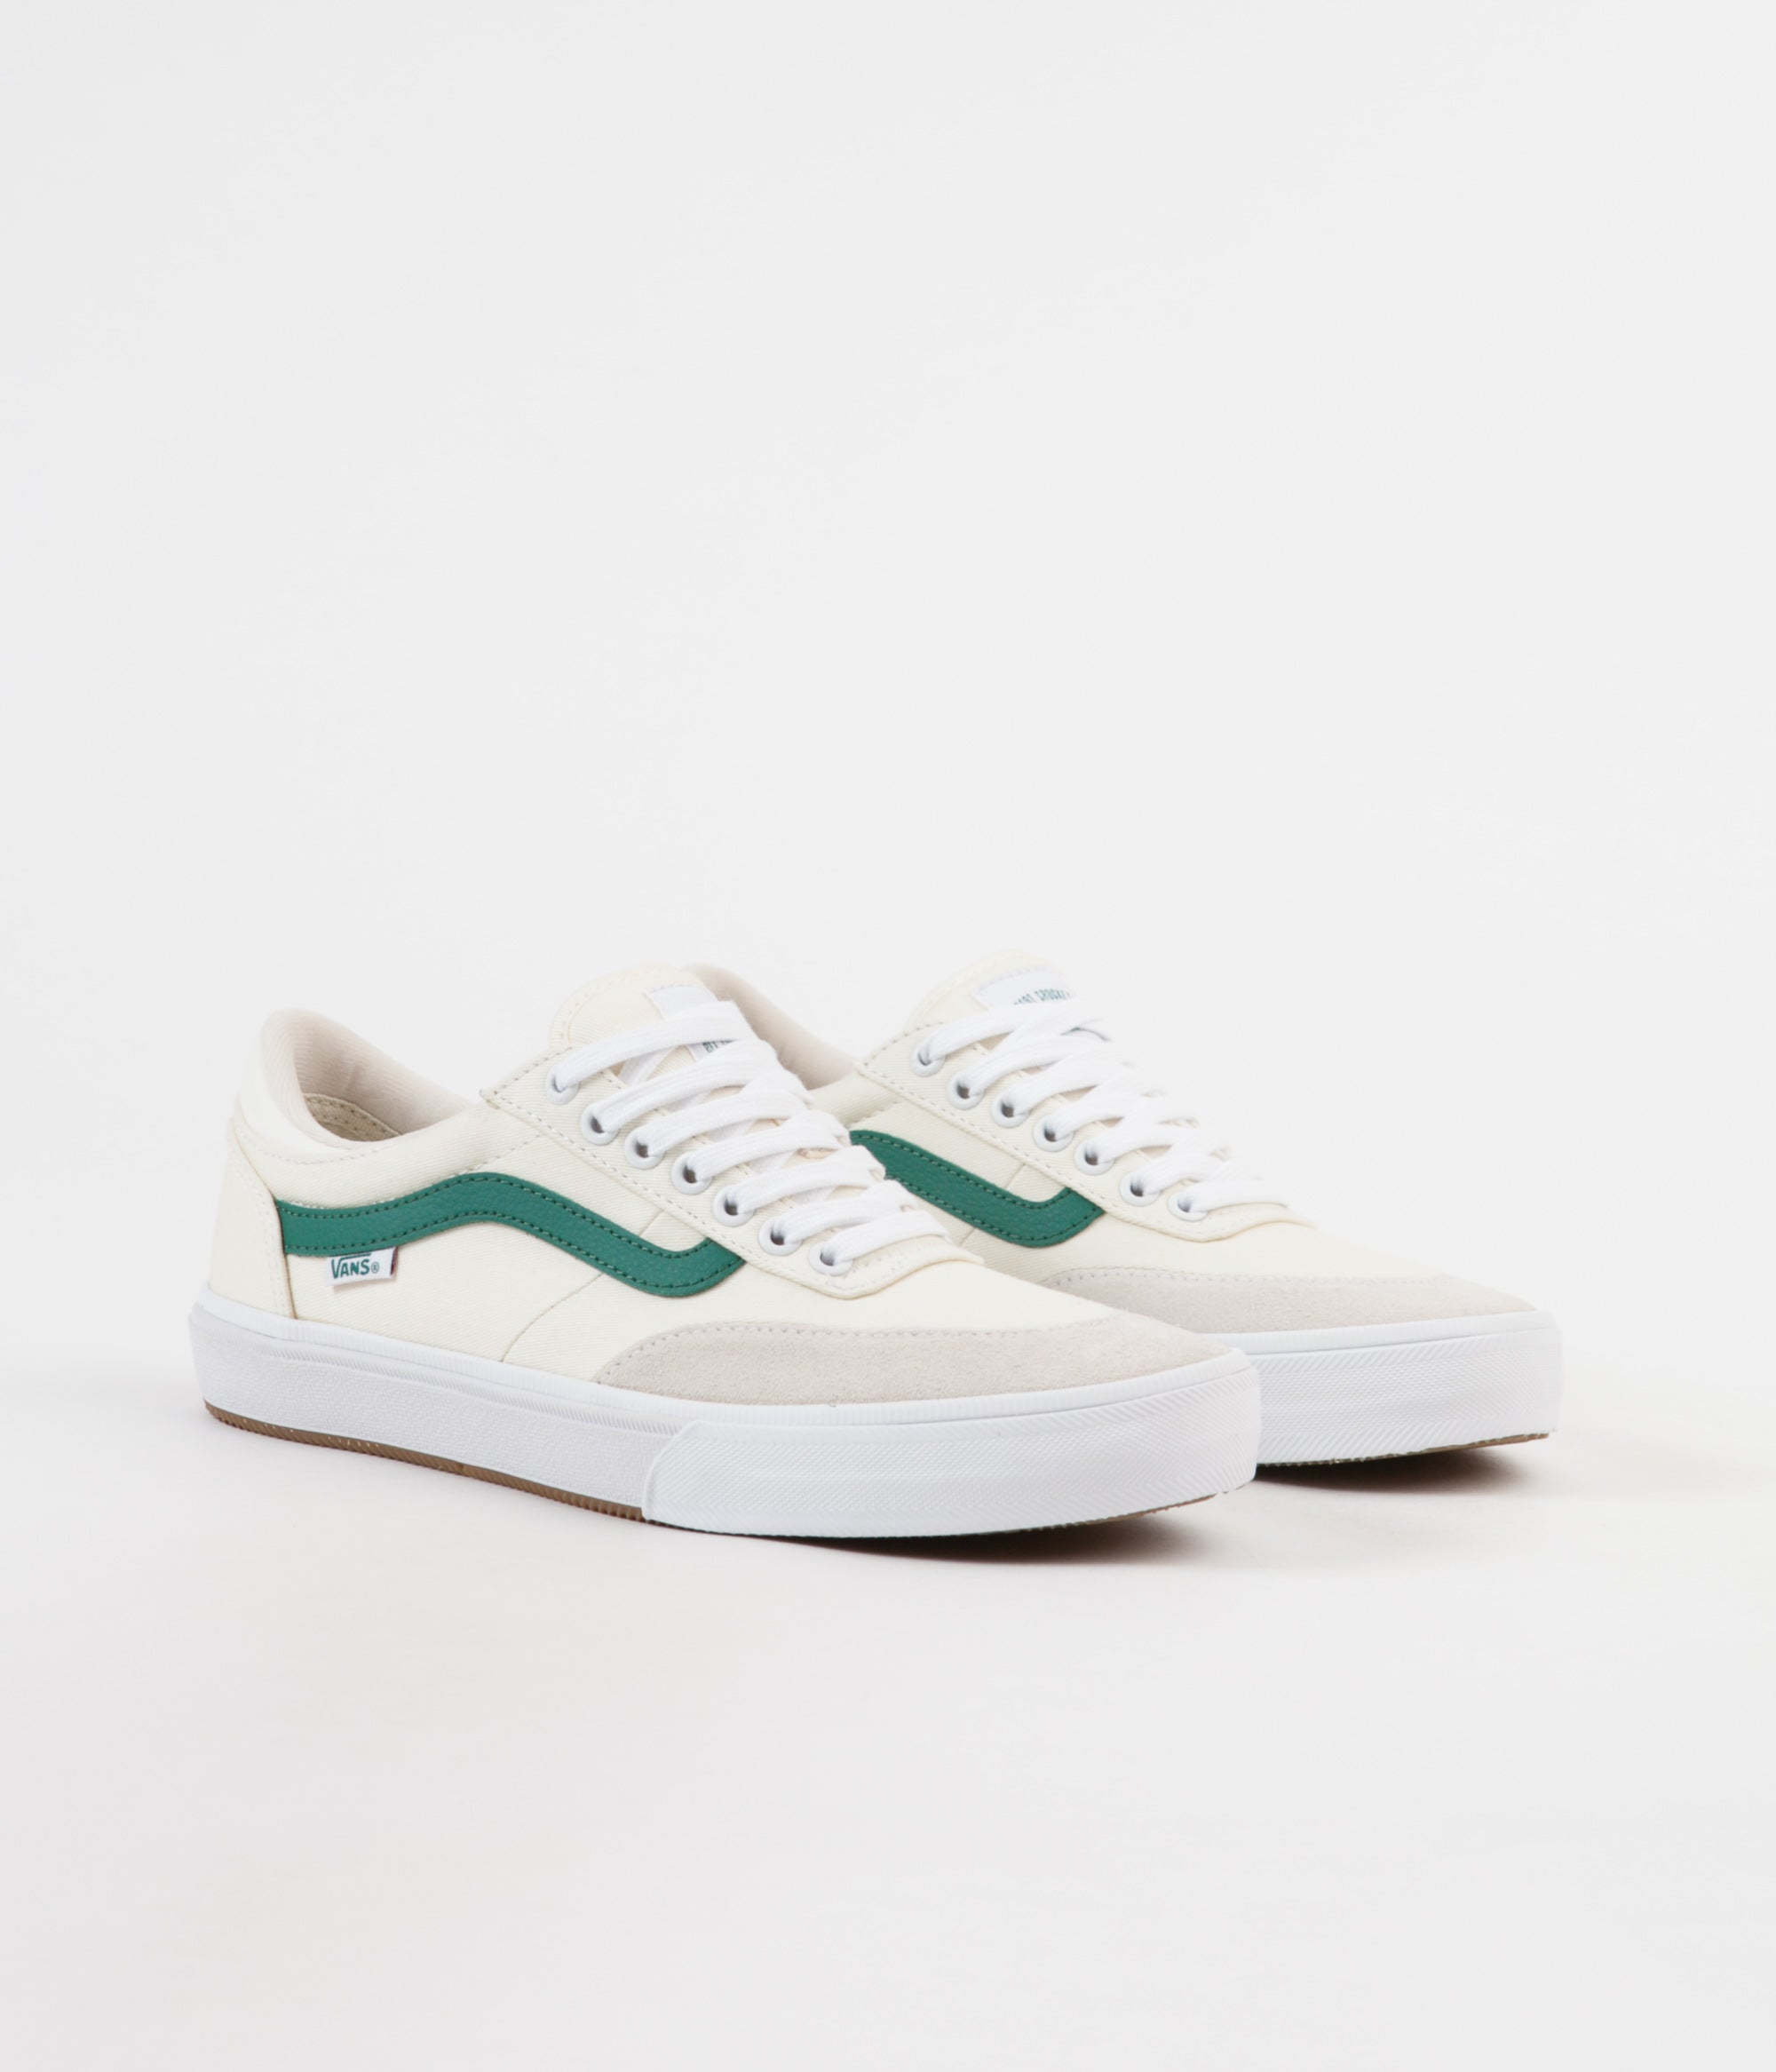 3b96fcb3a14d9f ... Vans Gilbert Crockett 2 Pro Centre Court Shoes - Classic White    Evergreen ...